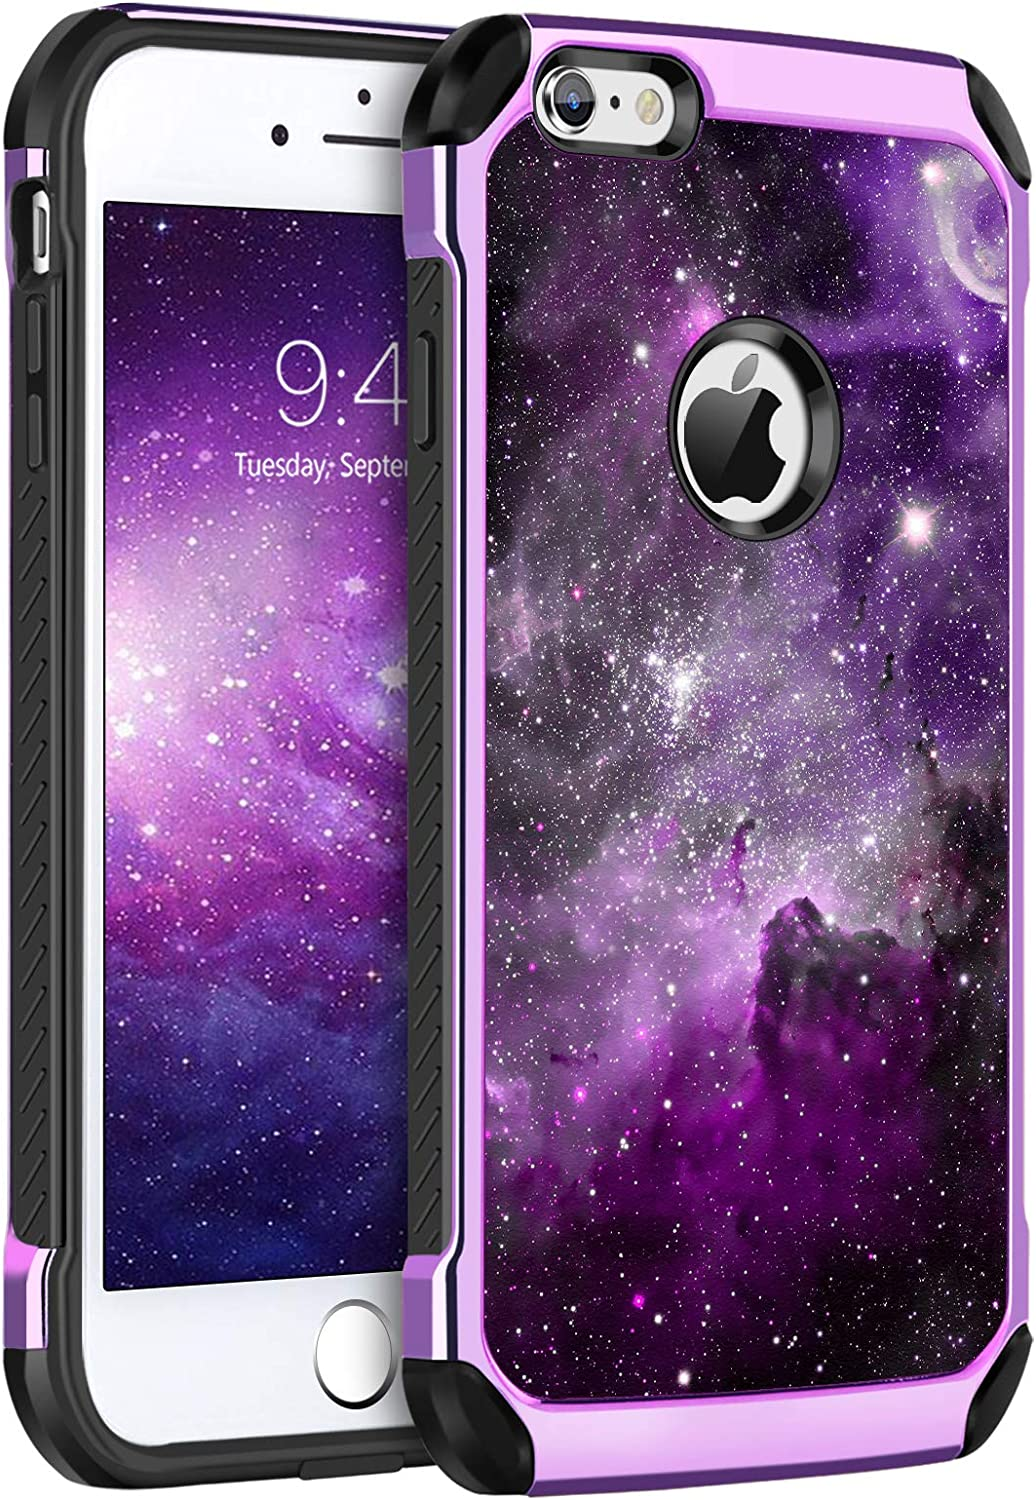 BENTOBEN iPhone 6S Plus Case, Slim Fit Glow in The Dark Shockproof Dual Layer Hybrid Hard PC Soft TPU Bumper Drop Protection Girl Women Covers for iPhone 6/6S Plus 5.5